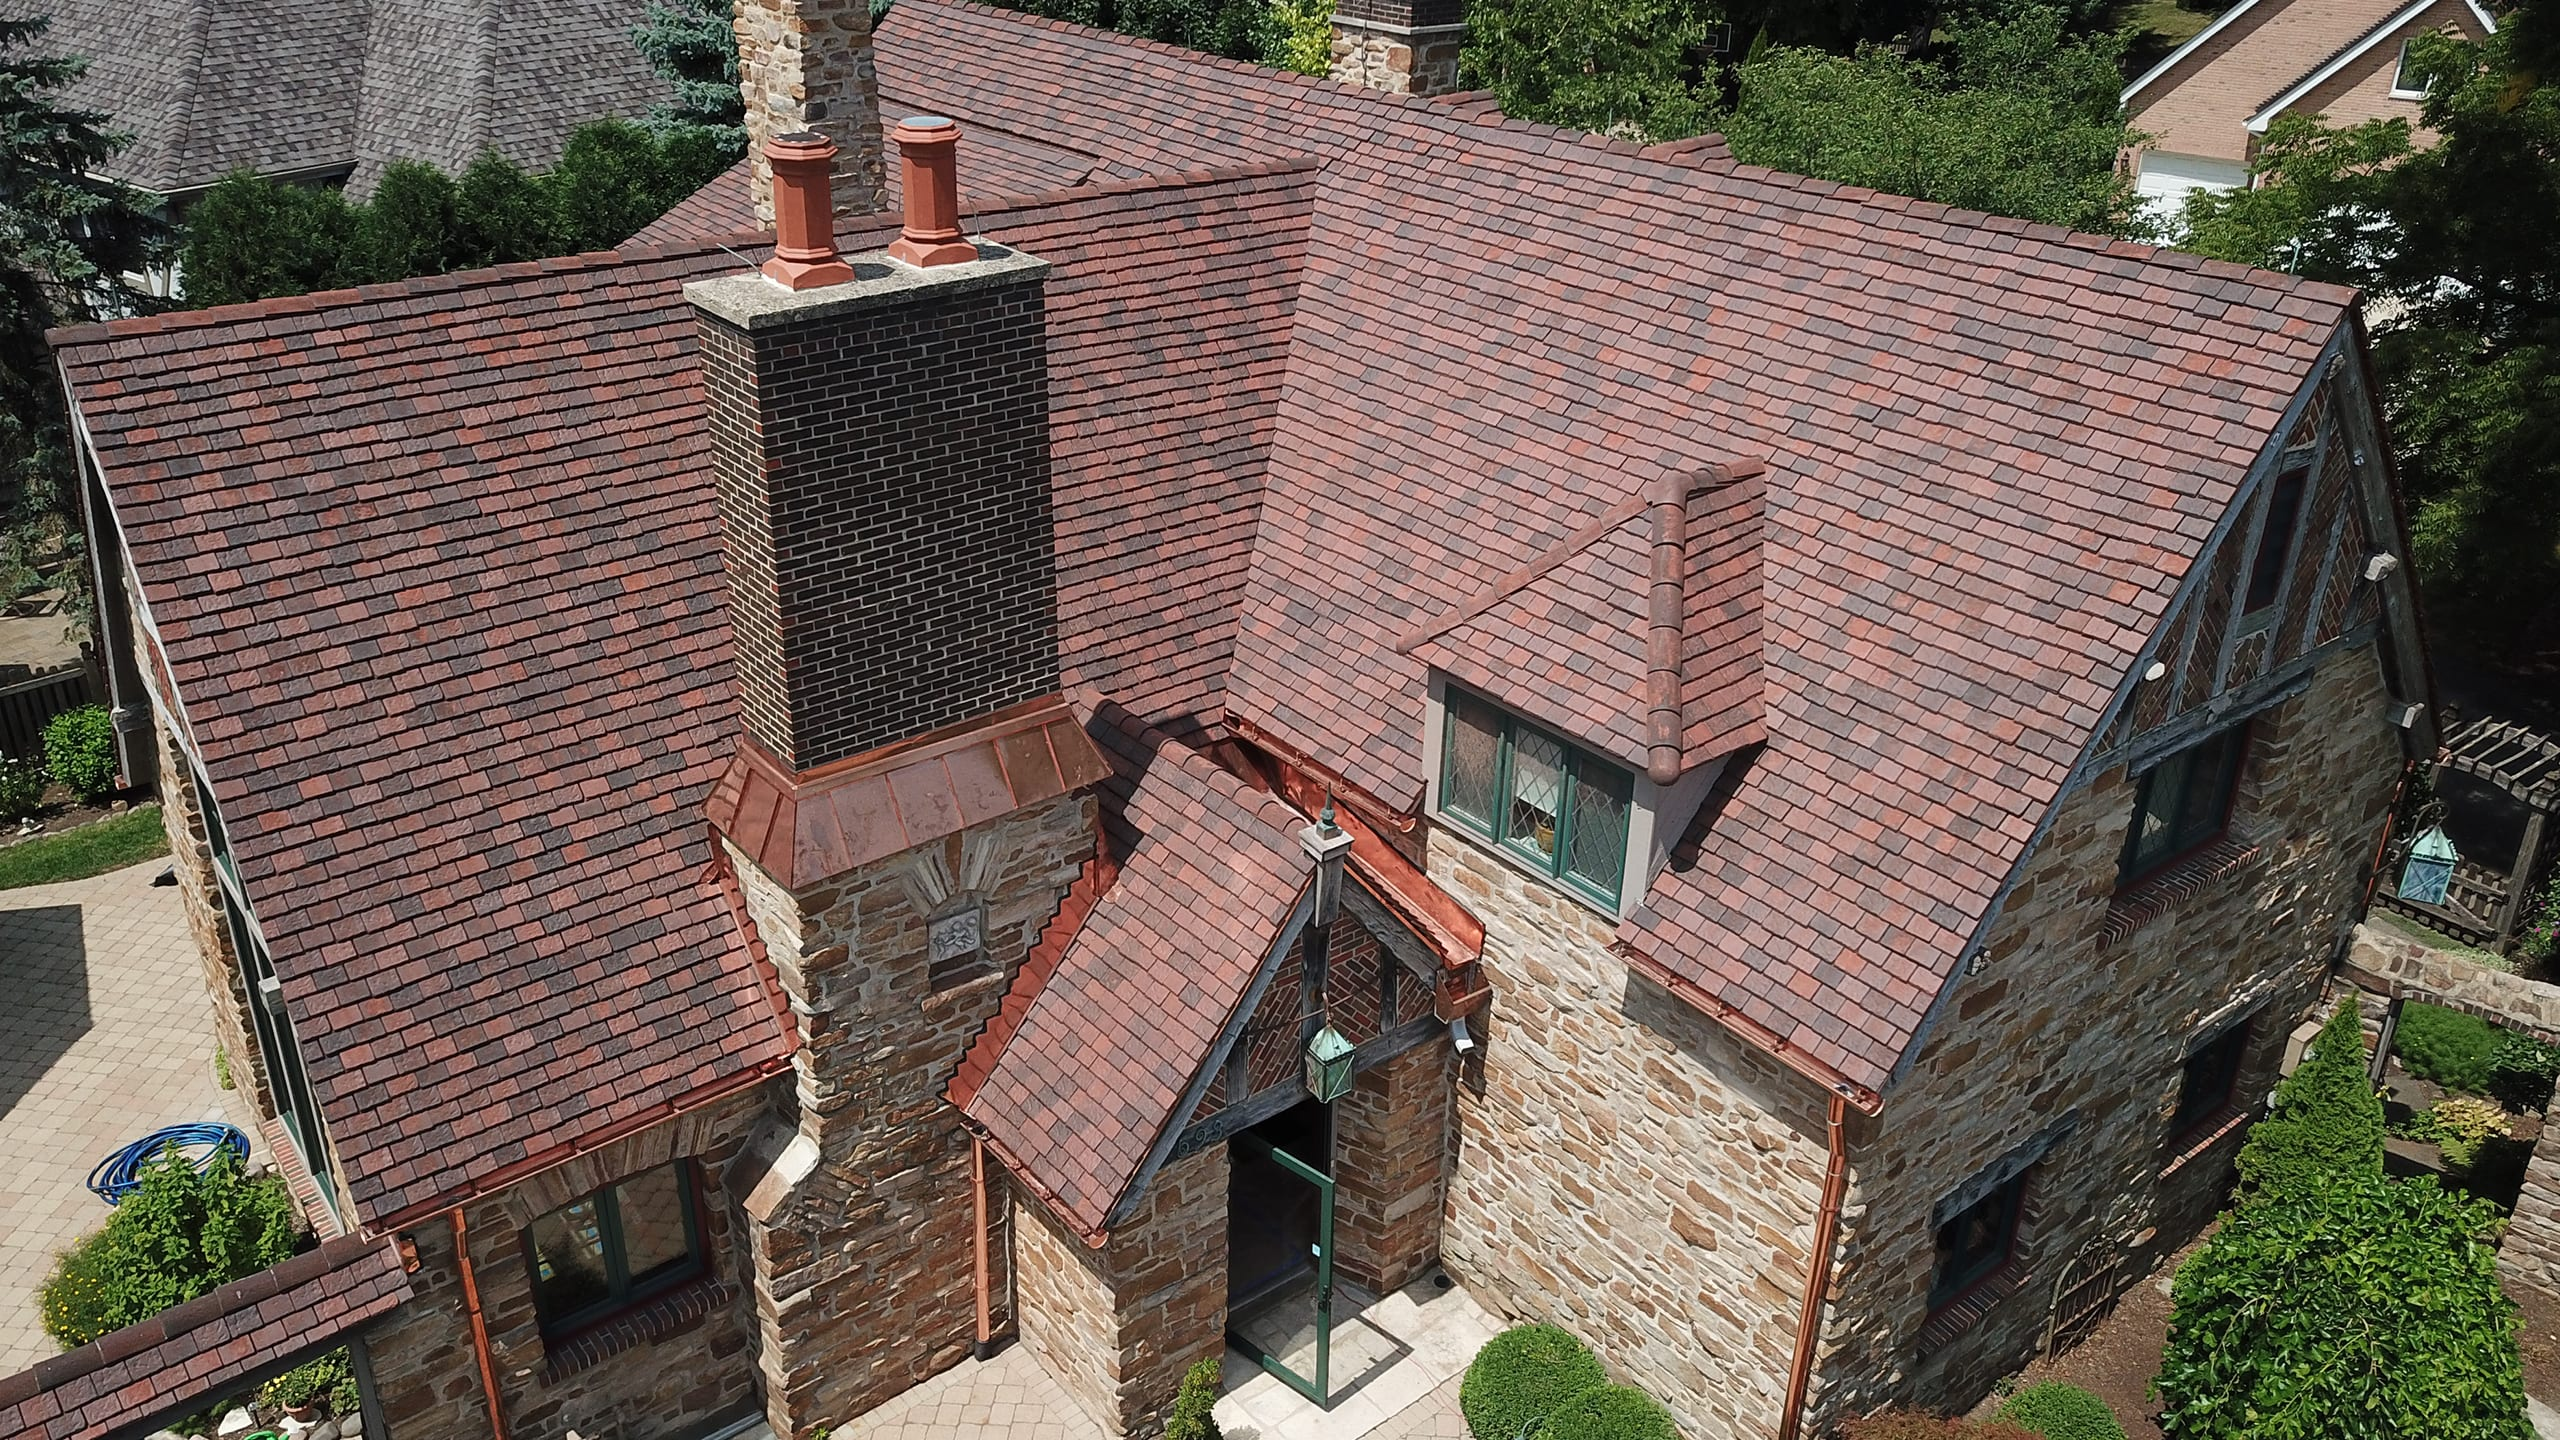 Private Residence - Schaumberg, IL Ludowici Roof Tile